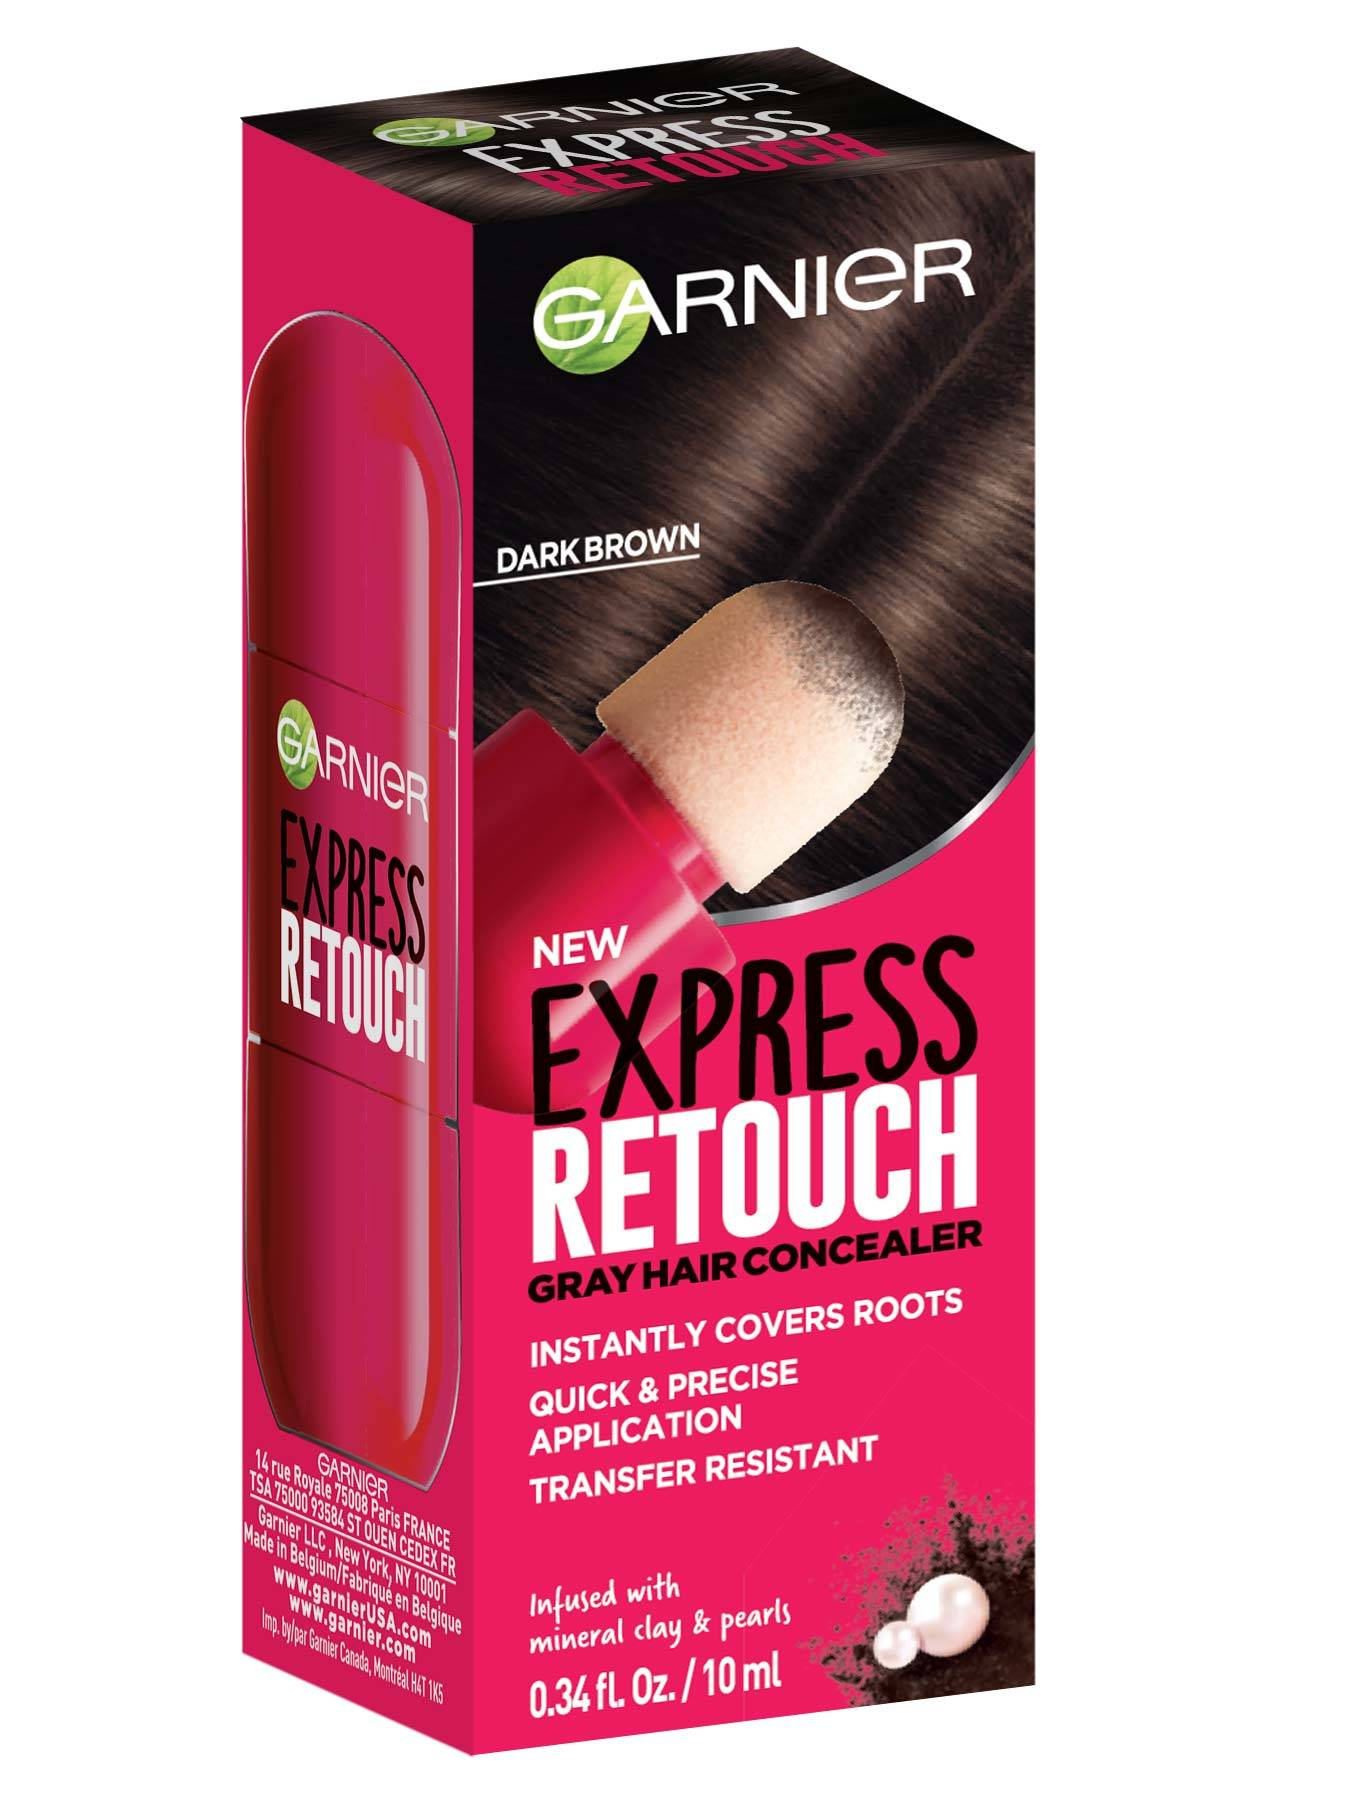 Express Retouch Dark Brown Front packshot - Temporary Root Touchup